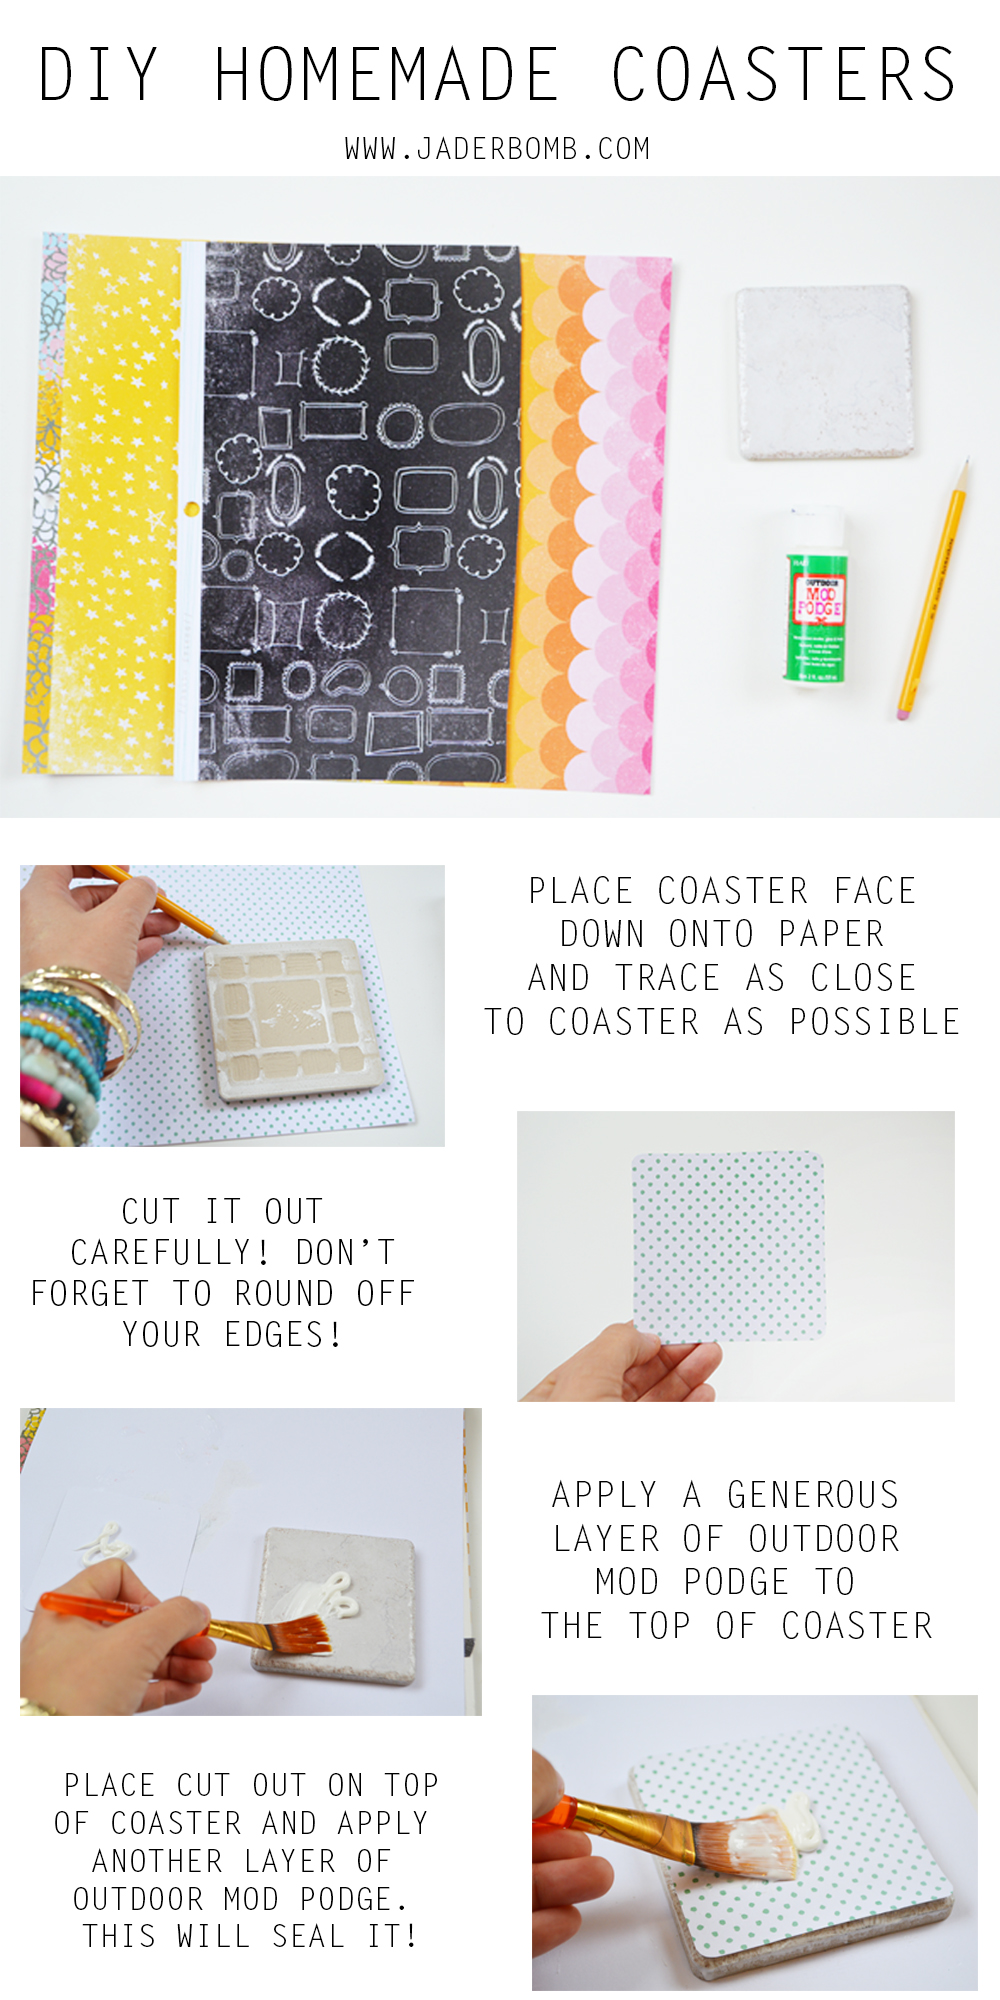 DIY HOMEMADE COASTERS